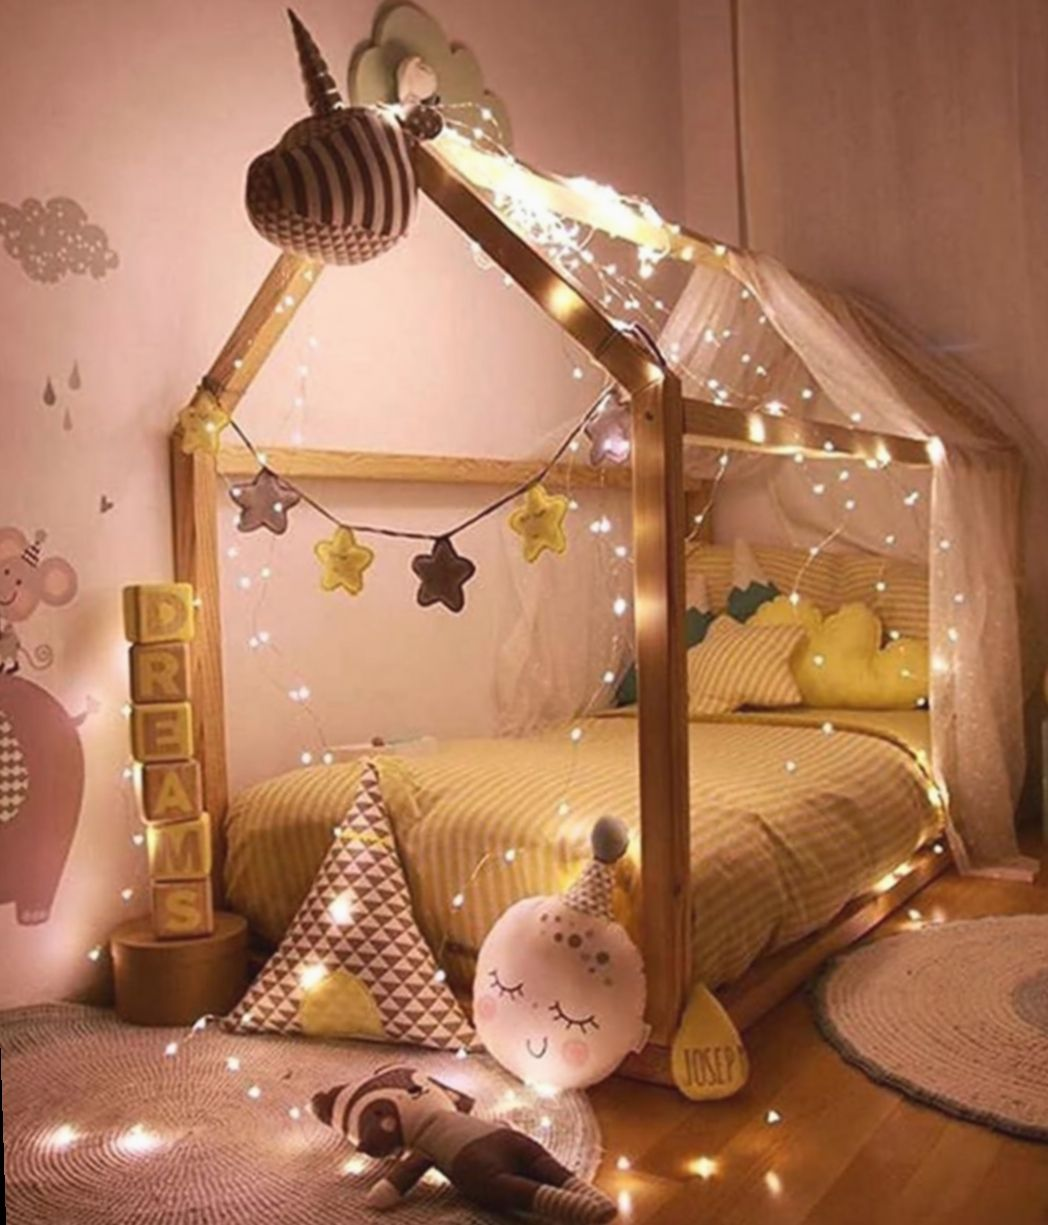 Cute Stuff For Your Room Girls Bedroom Acfotografia Aderitacristina Miniensaio Toddler Bedroom Girl Girl Bedroom Designs Diy Toddler Bed